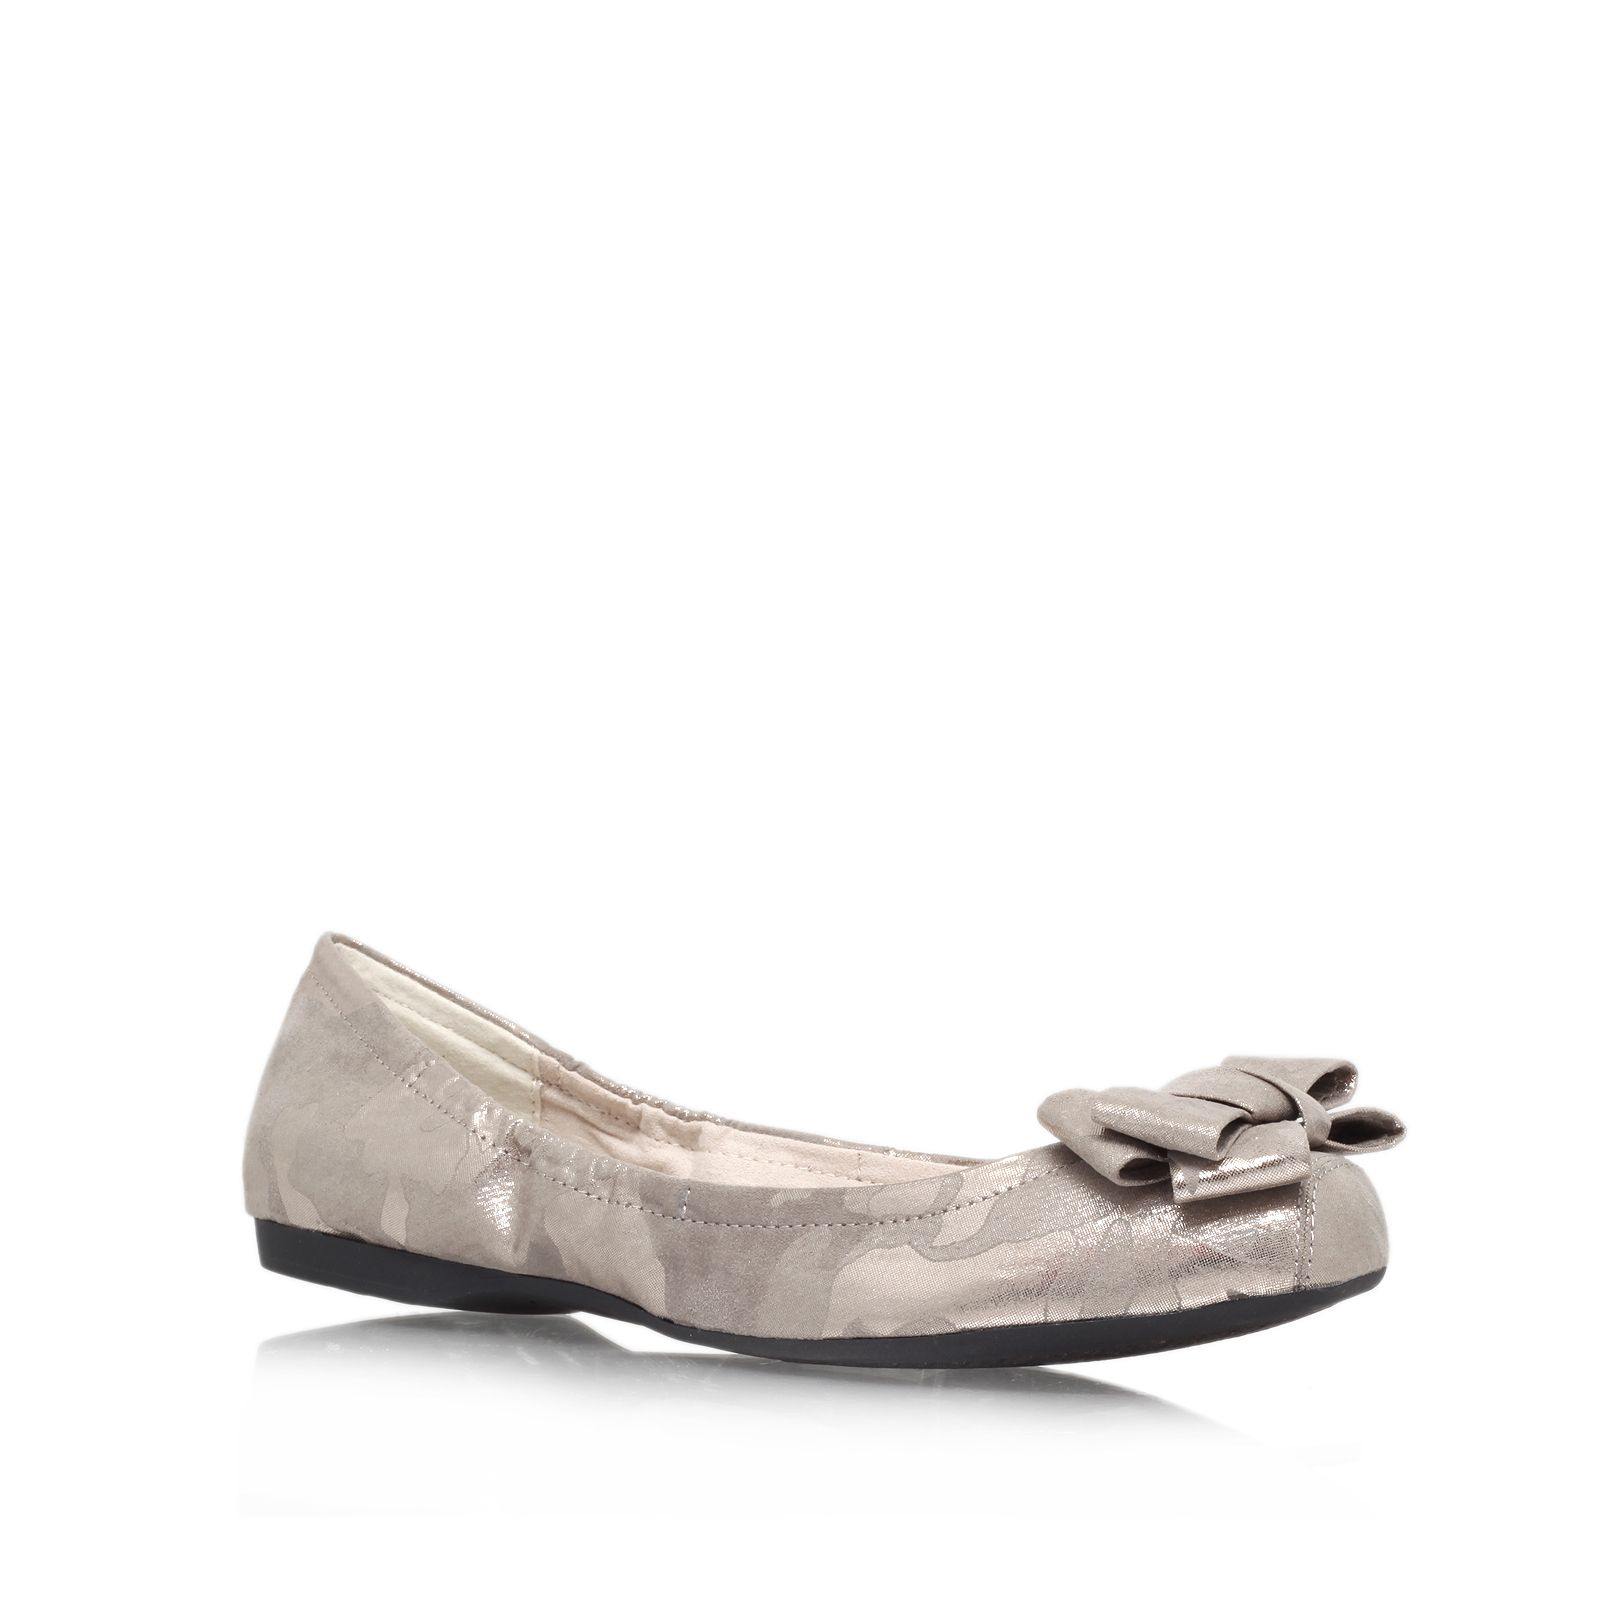 Milee slip on pumps